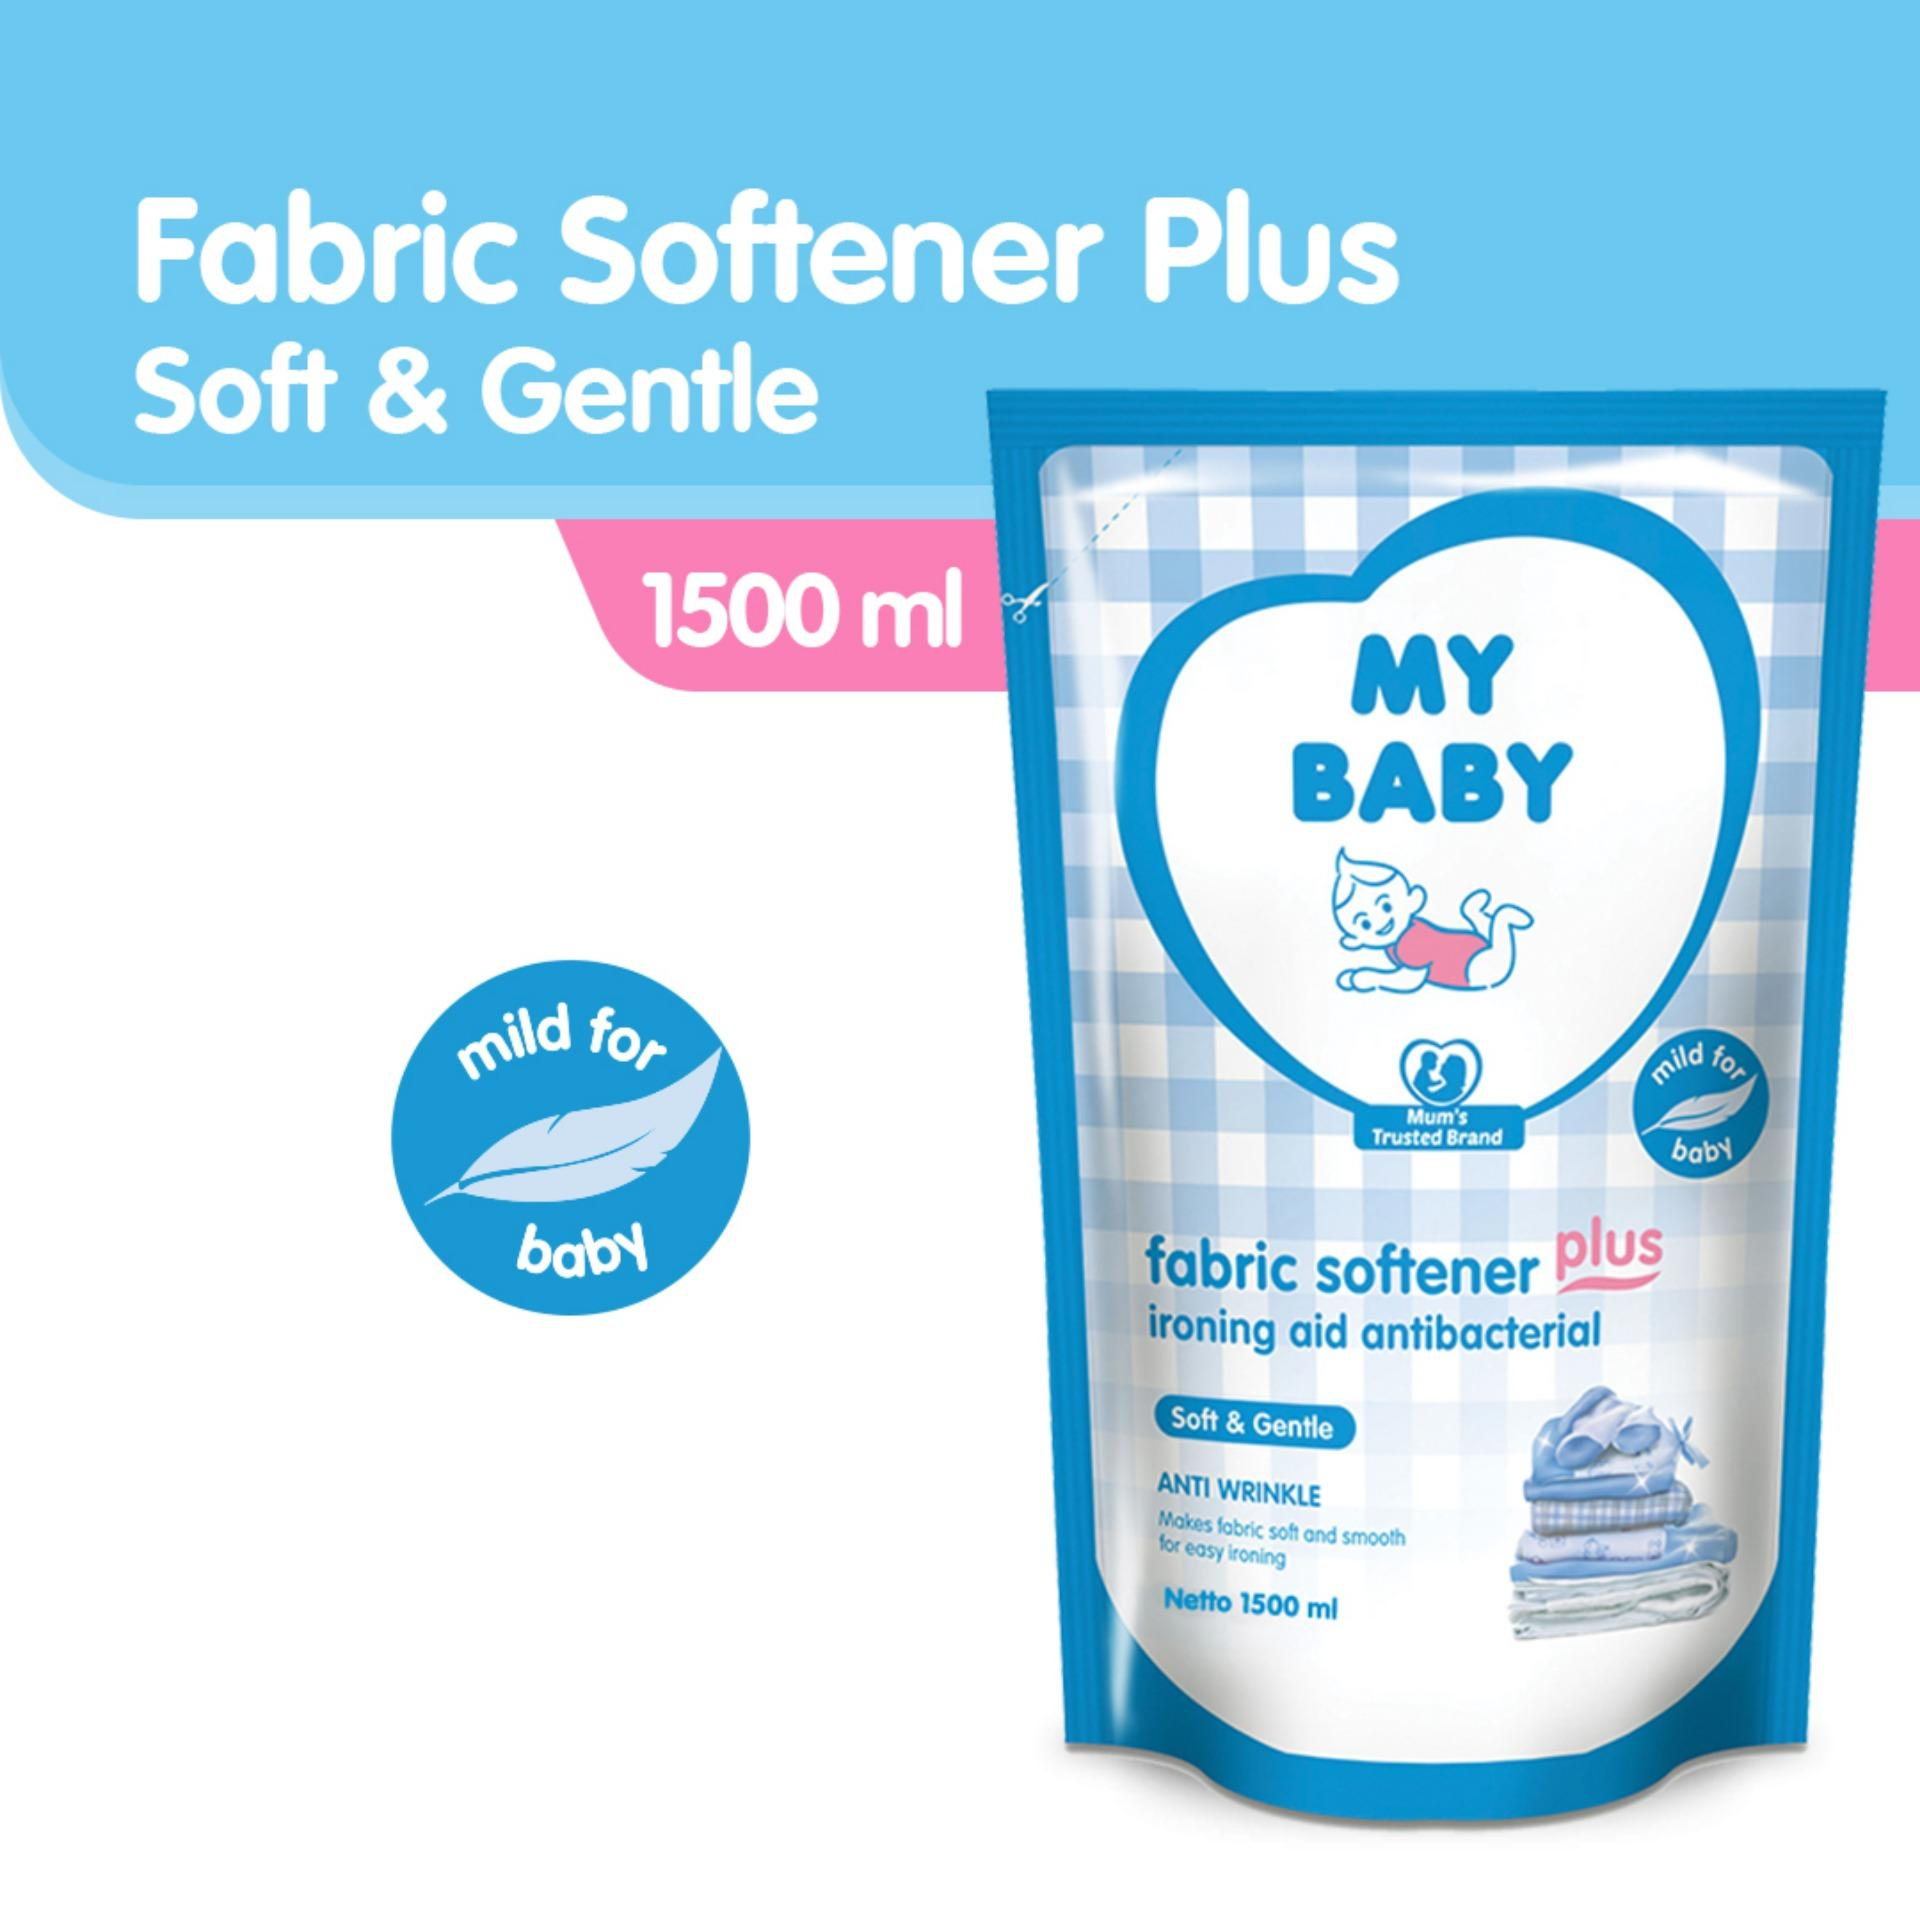 My Baby Fabric Softener Plus Ironing Aid Soft and Gentle [1500 mL]